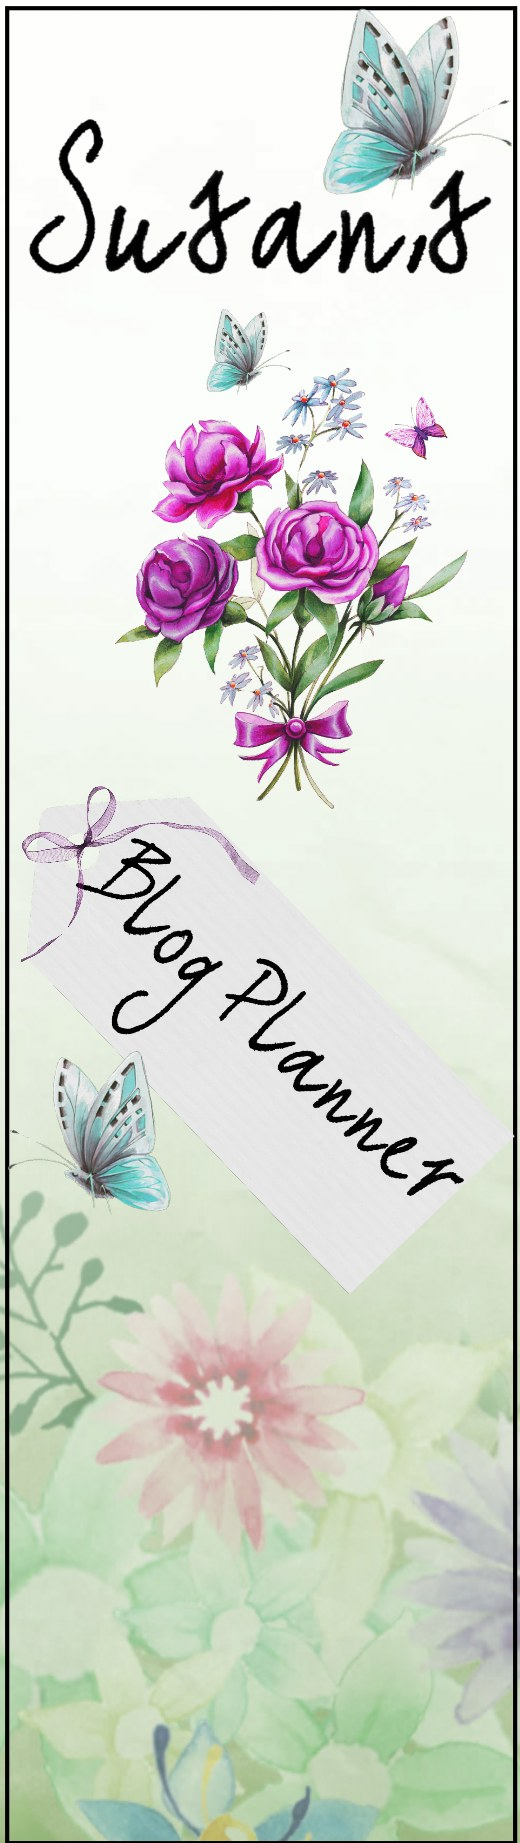 Living Creatively with Fibro | Blog planner spine label